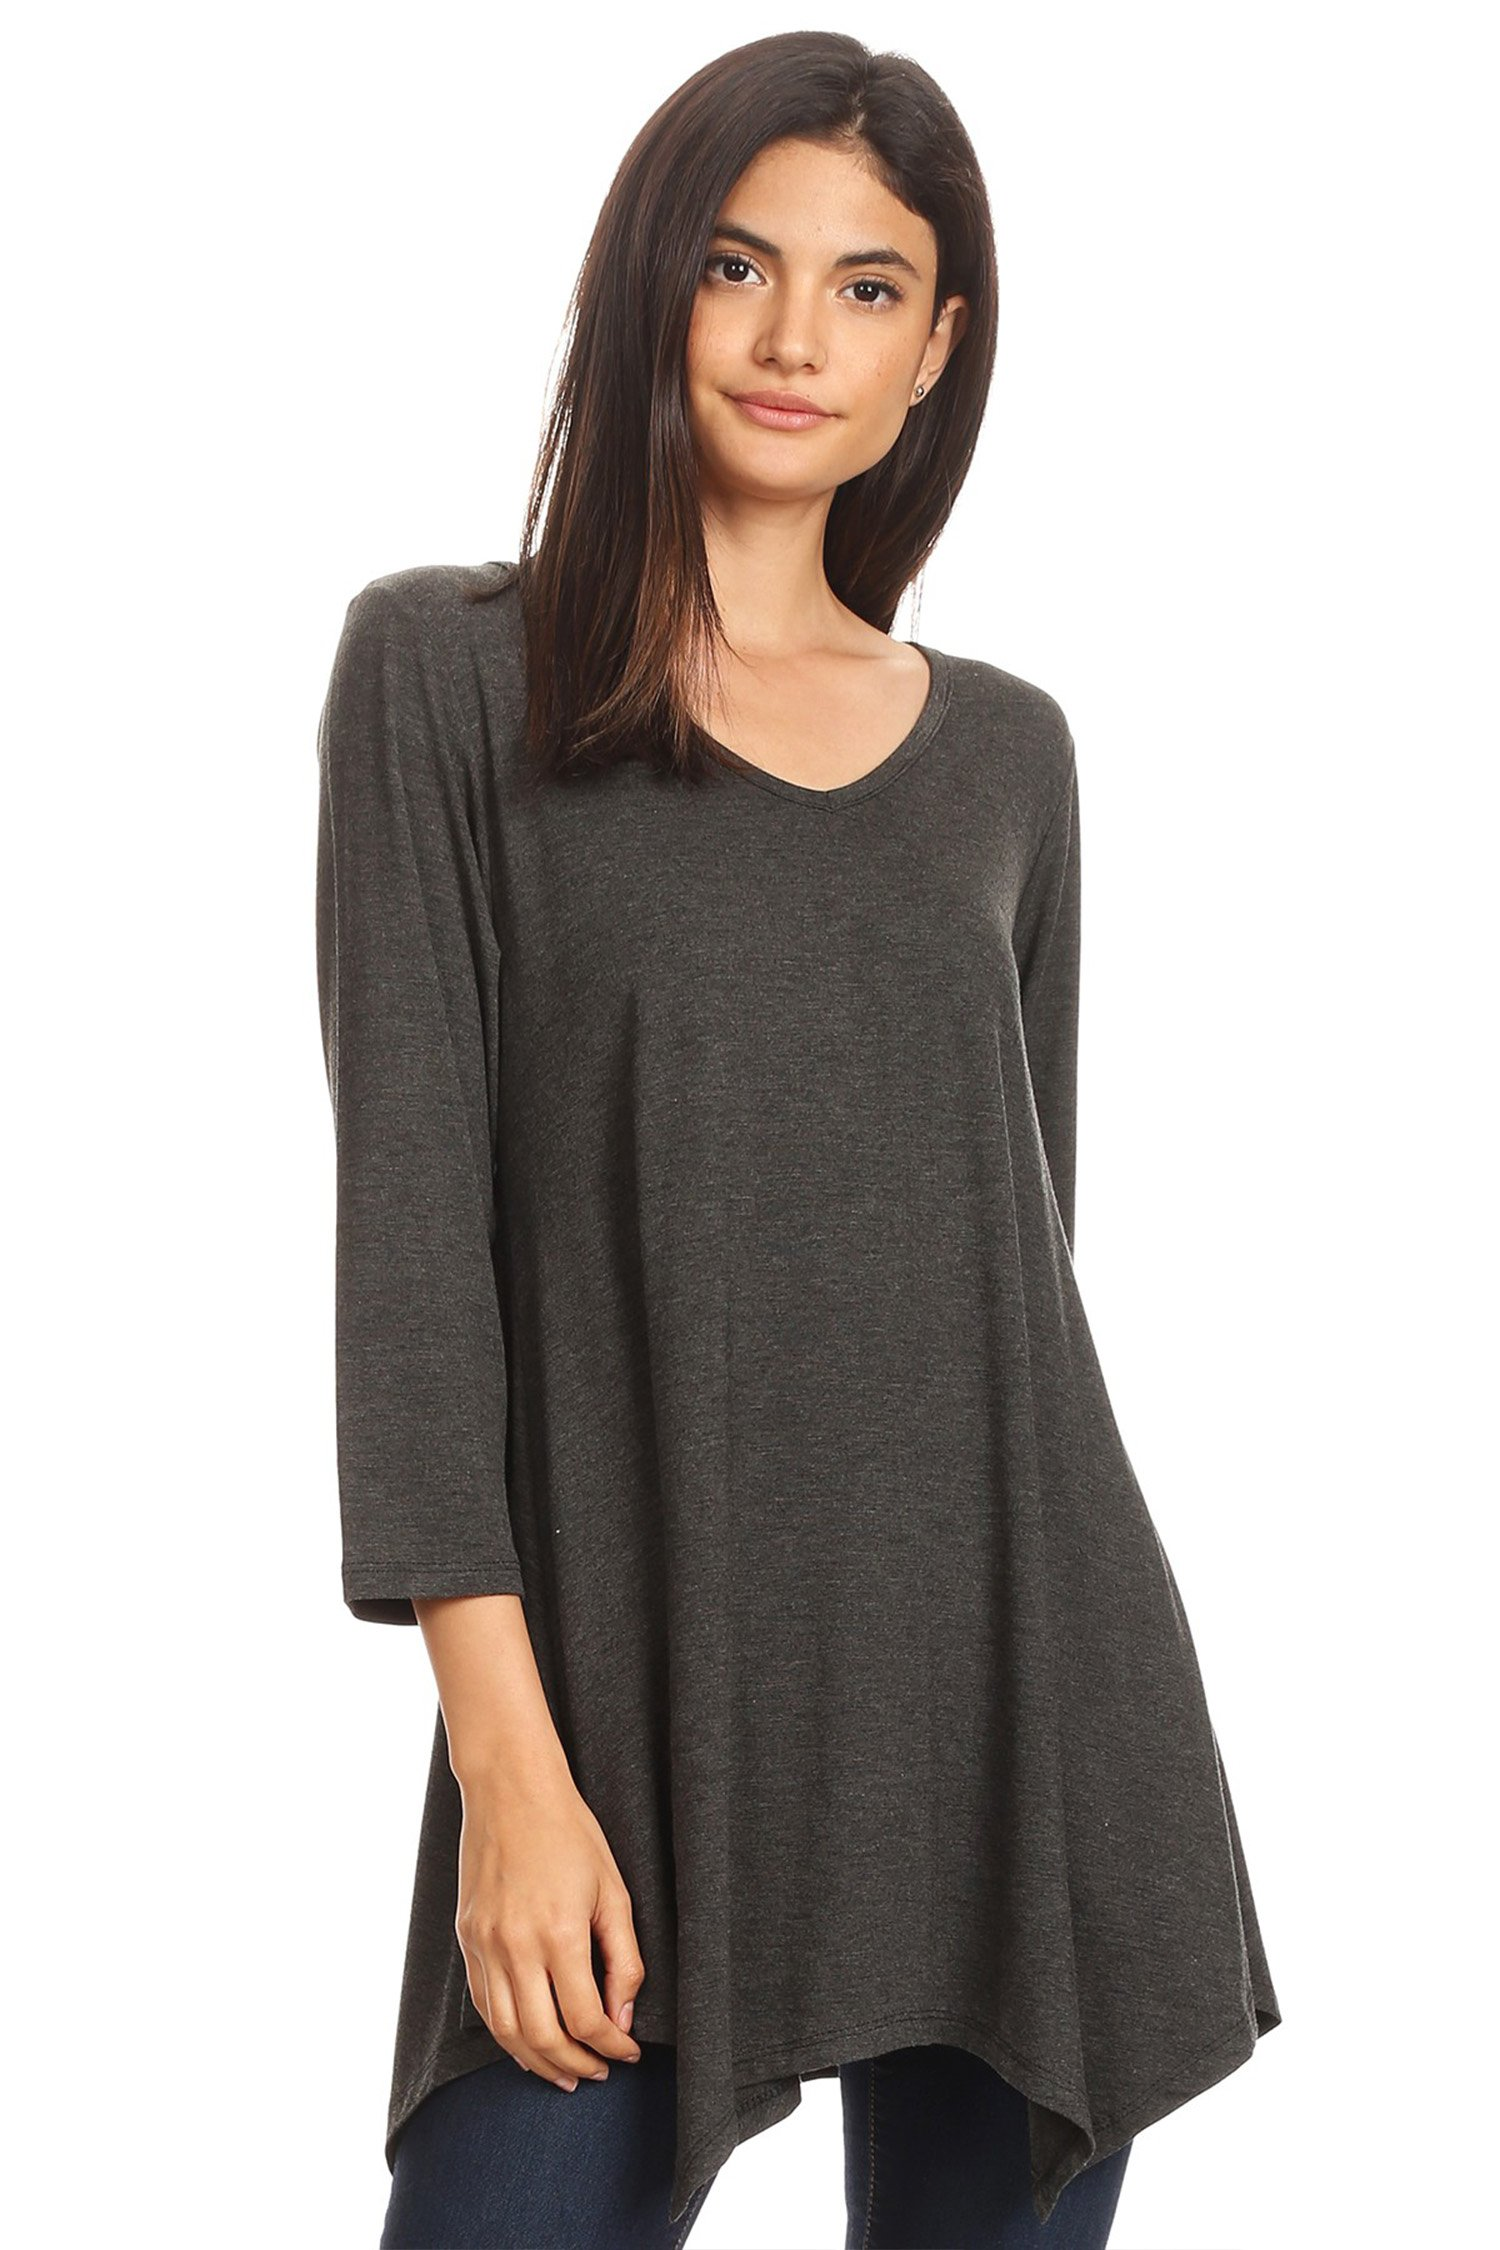 Womens V-Neck Long Sleeve Pleats Tunic Dress Top/Made In USA Charcoal XL